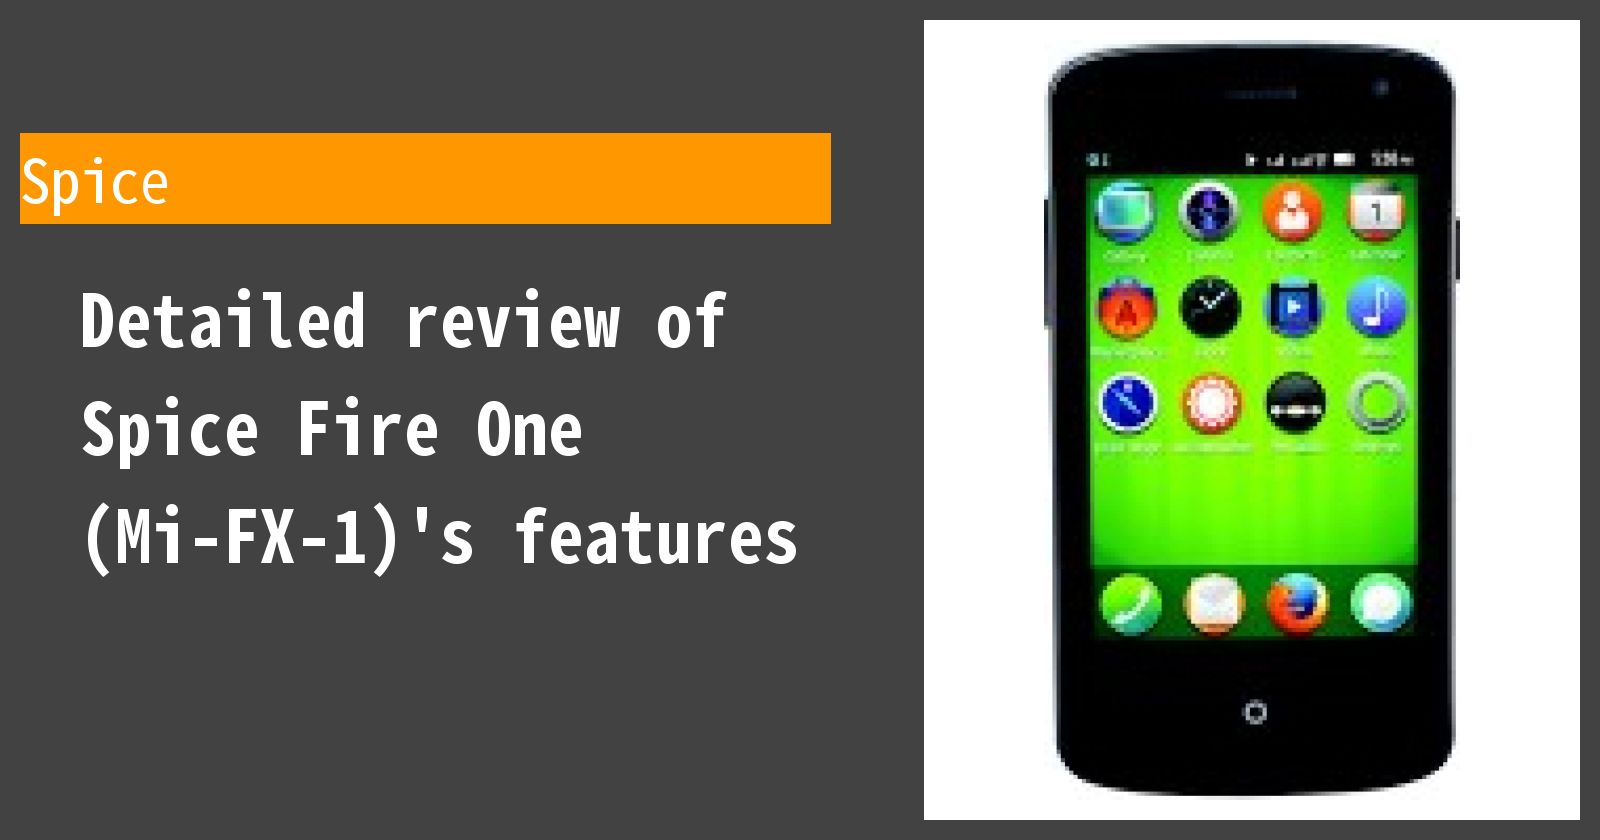 Detailed review of Spice Fire One (Mi-FX-1)'s features